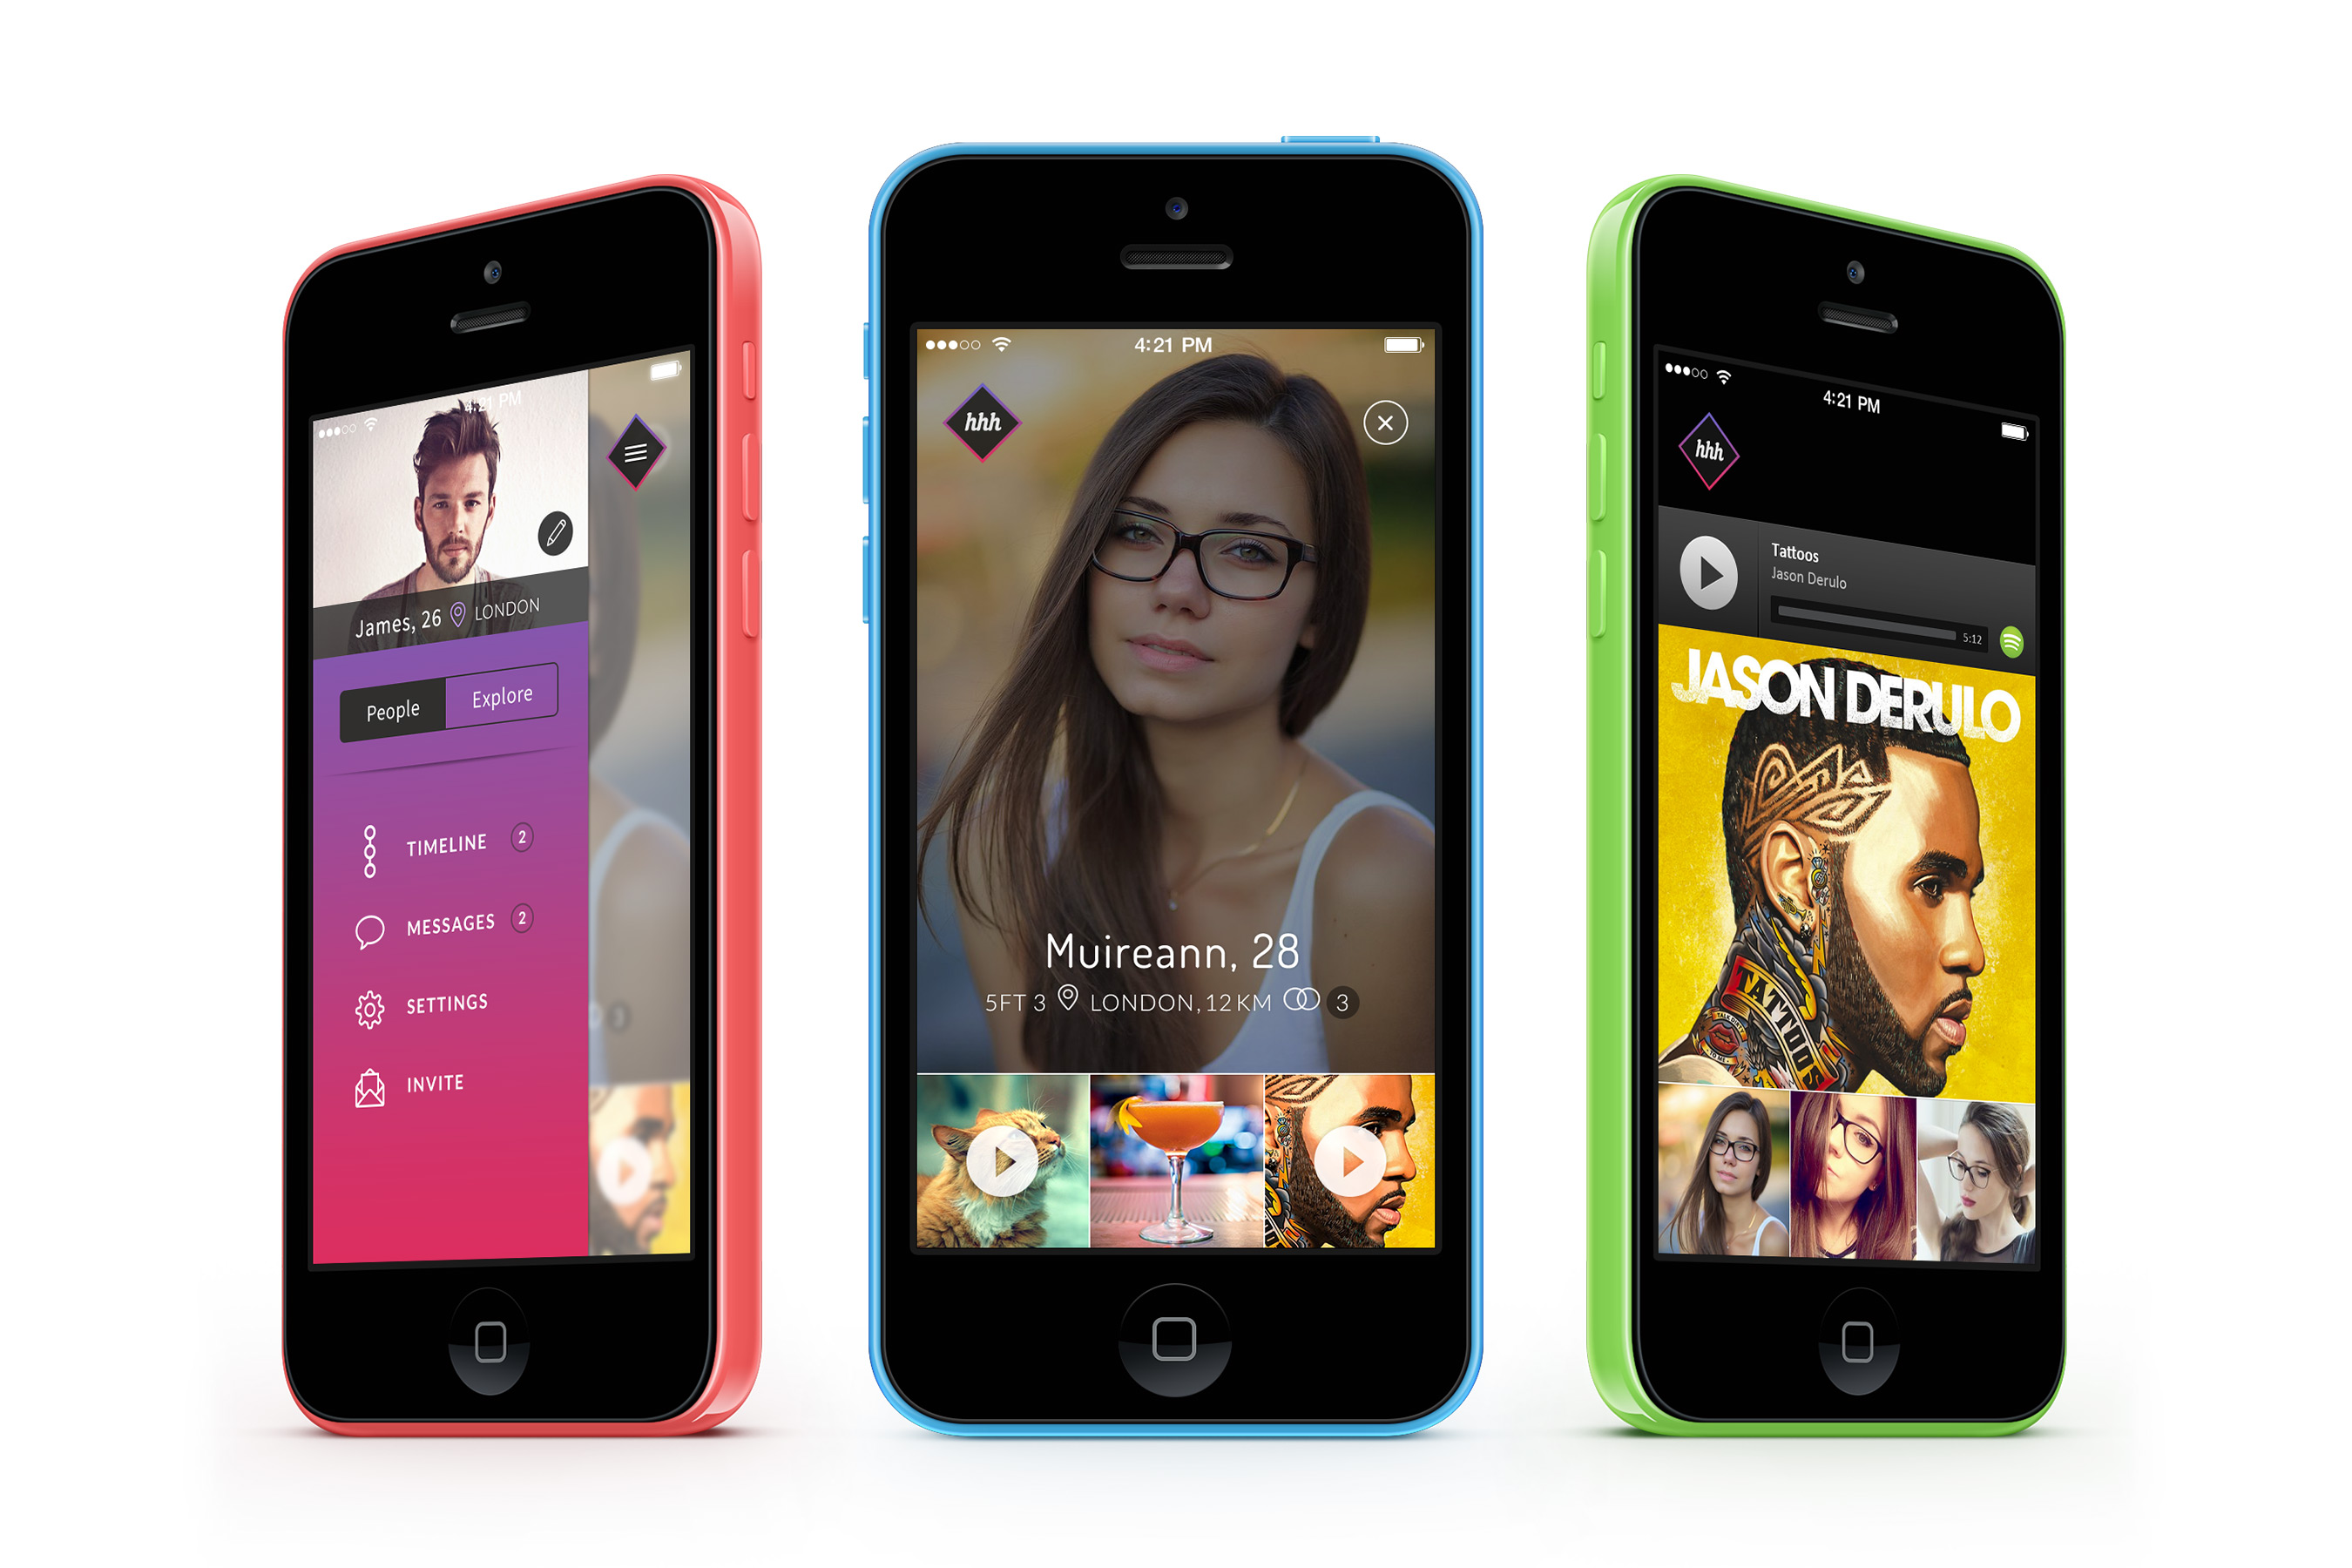 hhhello mobile app iphone design - tinder style social app 3 screens shown on iphone 5c's